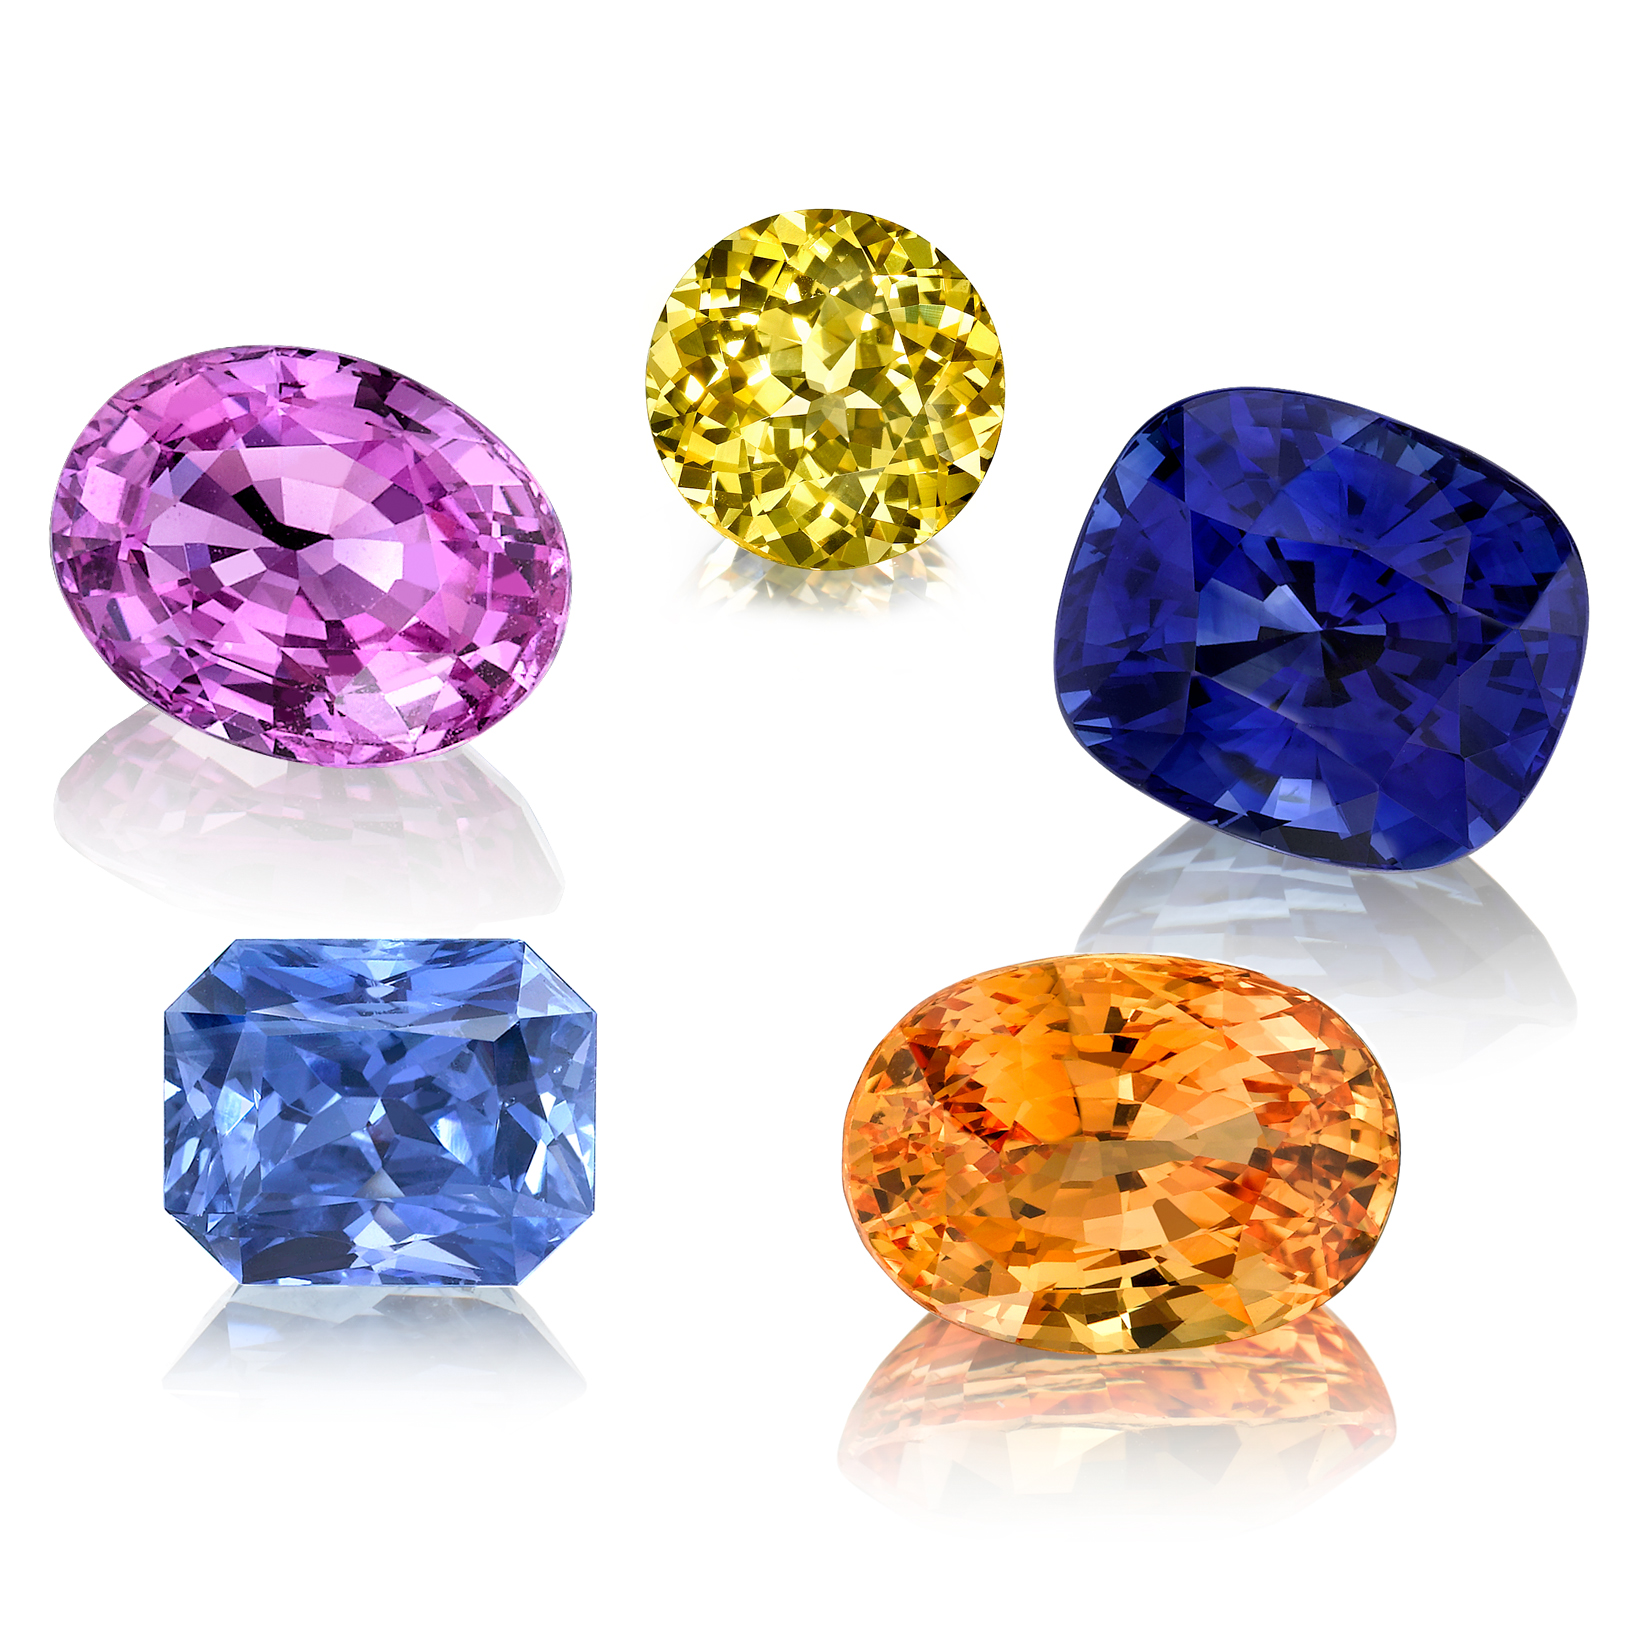 gemstone the world valuable mixed in cut tanzanite gemstones purple color most